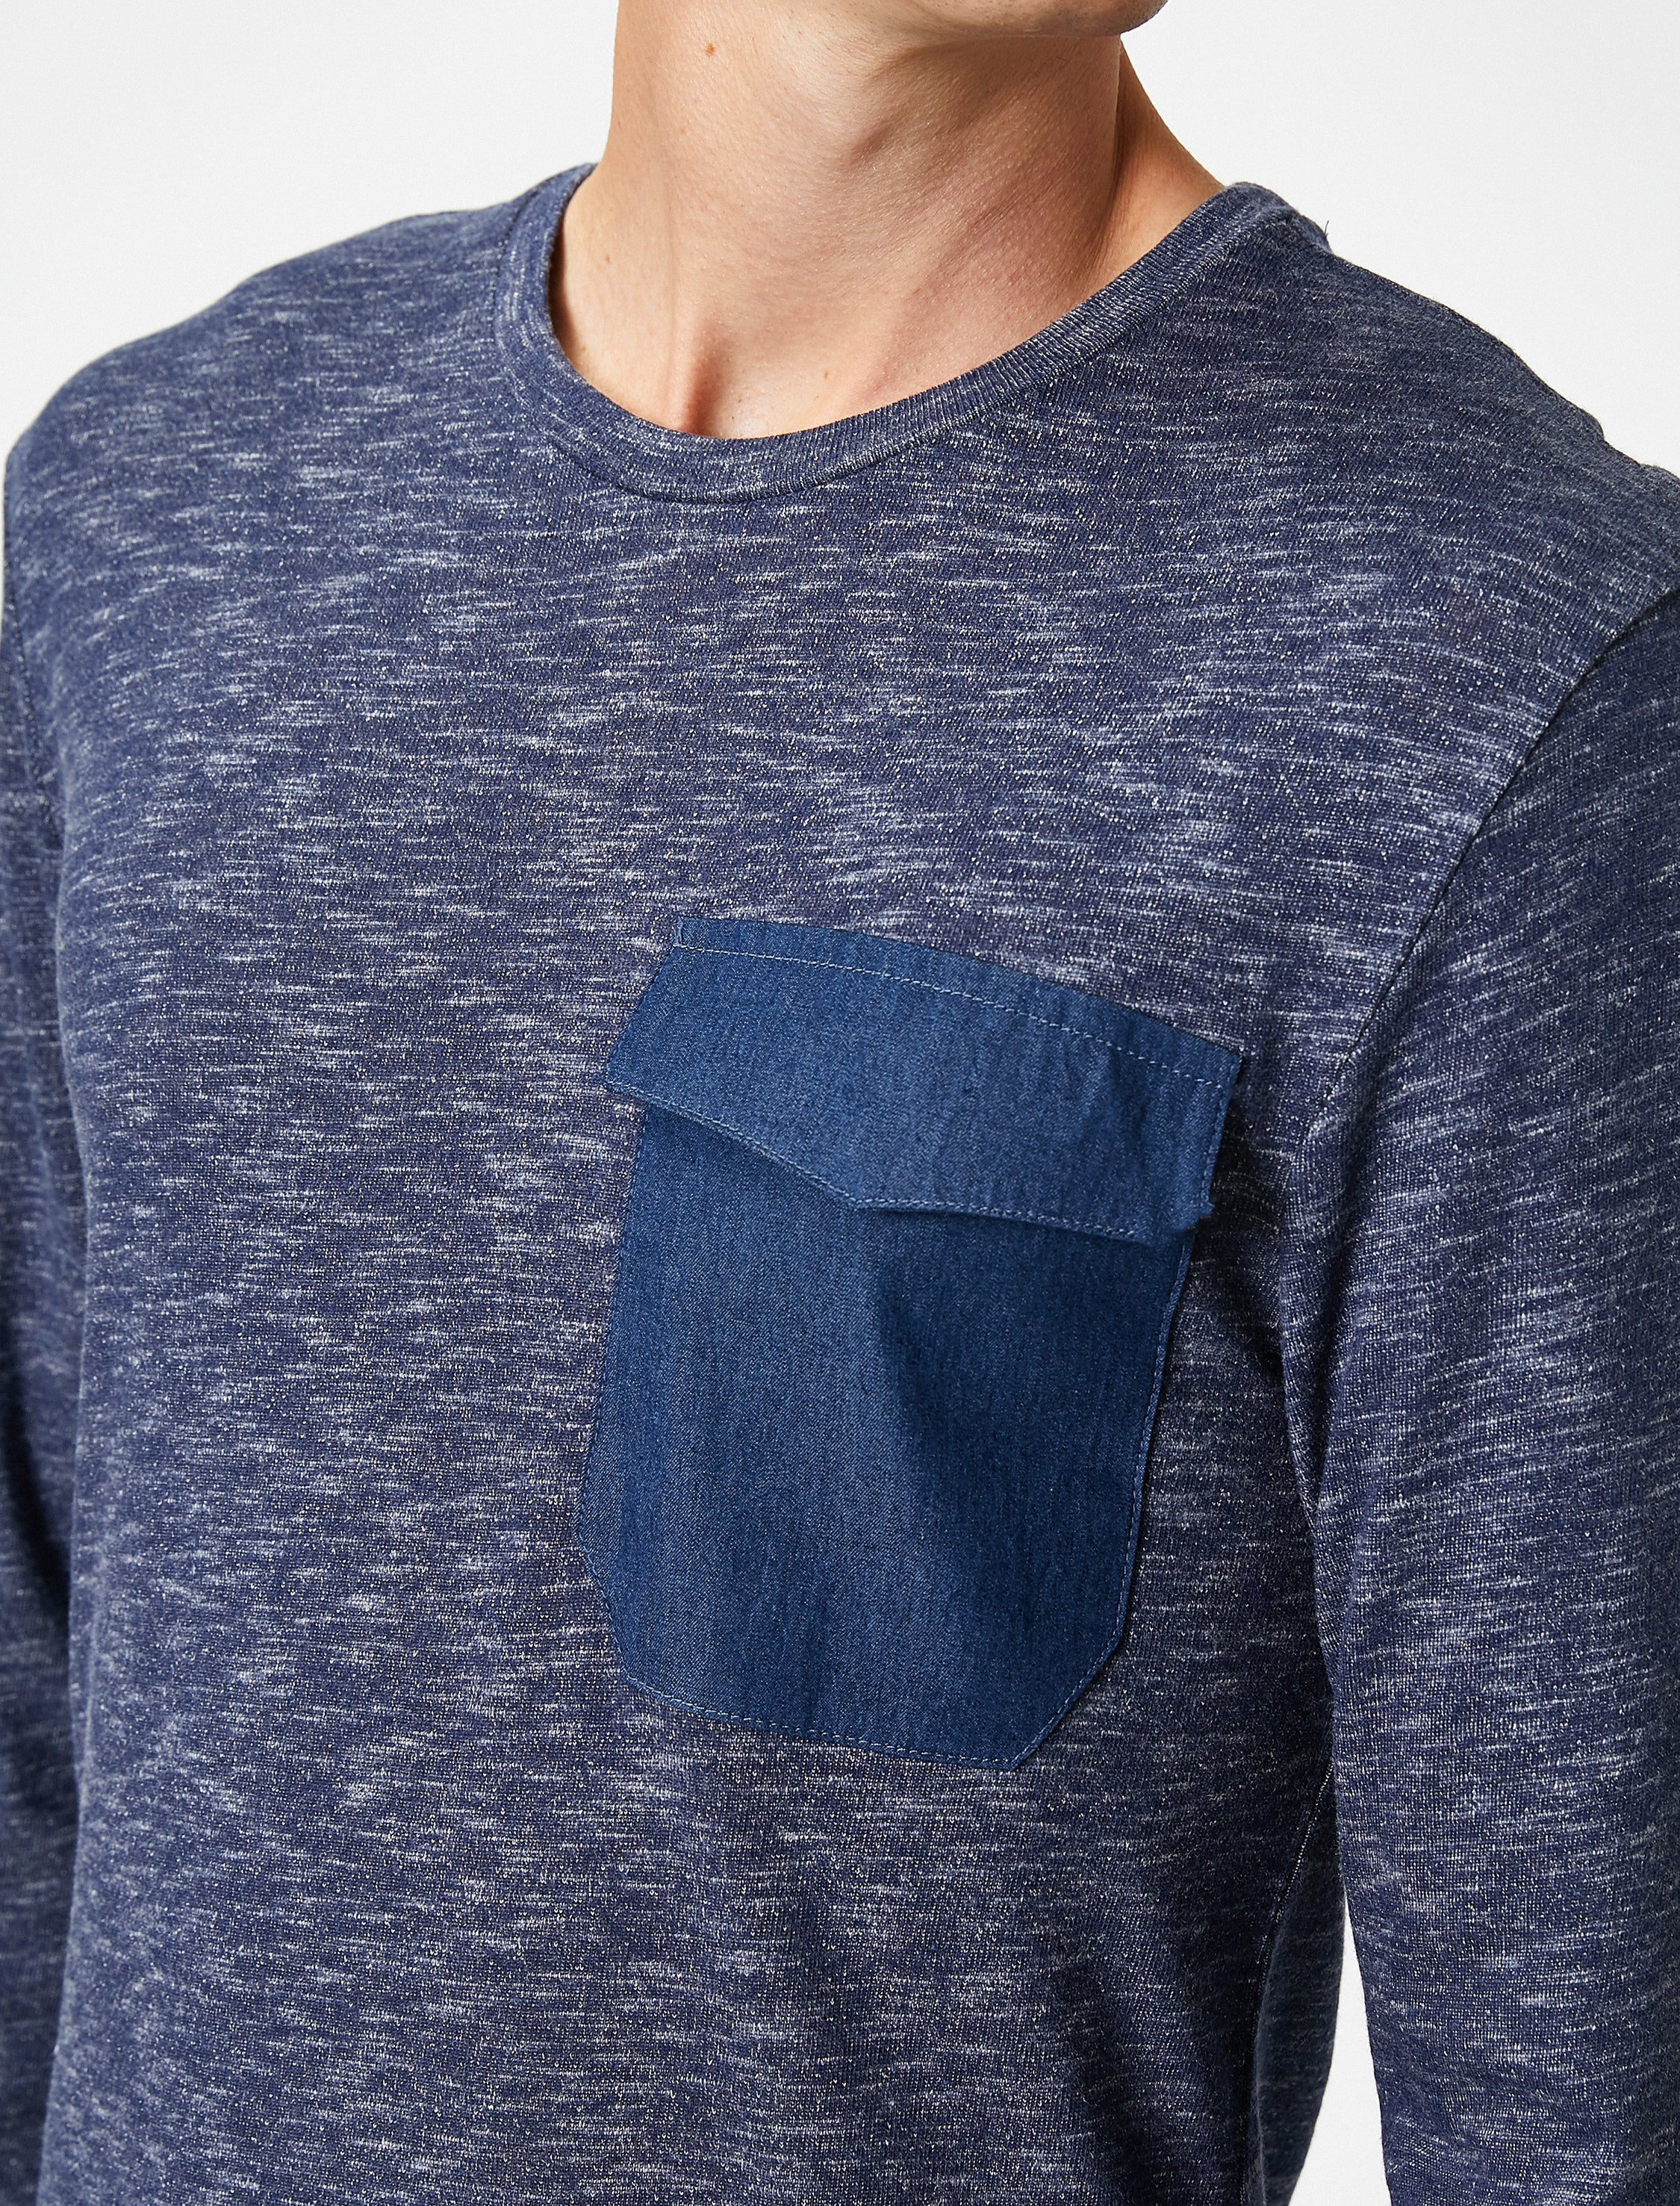 Denim Pocket Long Sleeve TShirt in Indigo